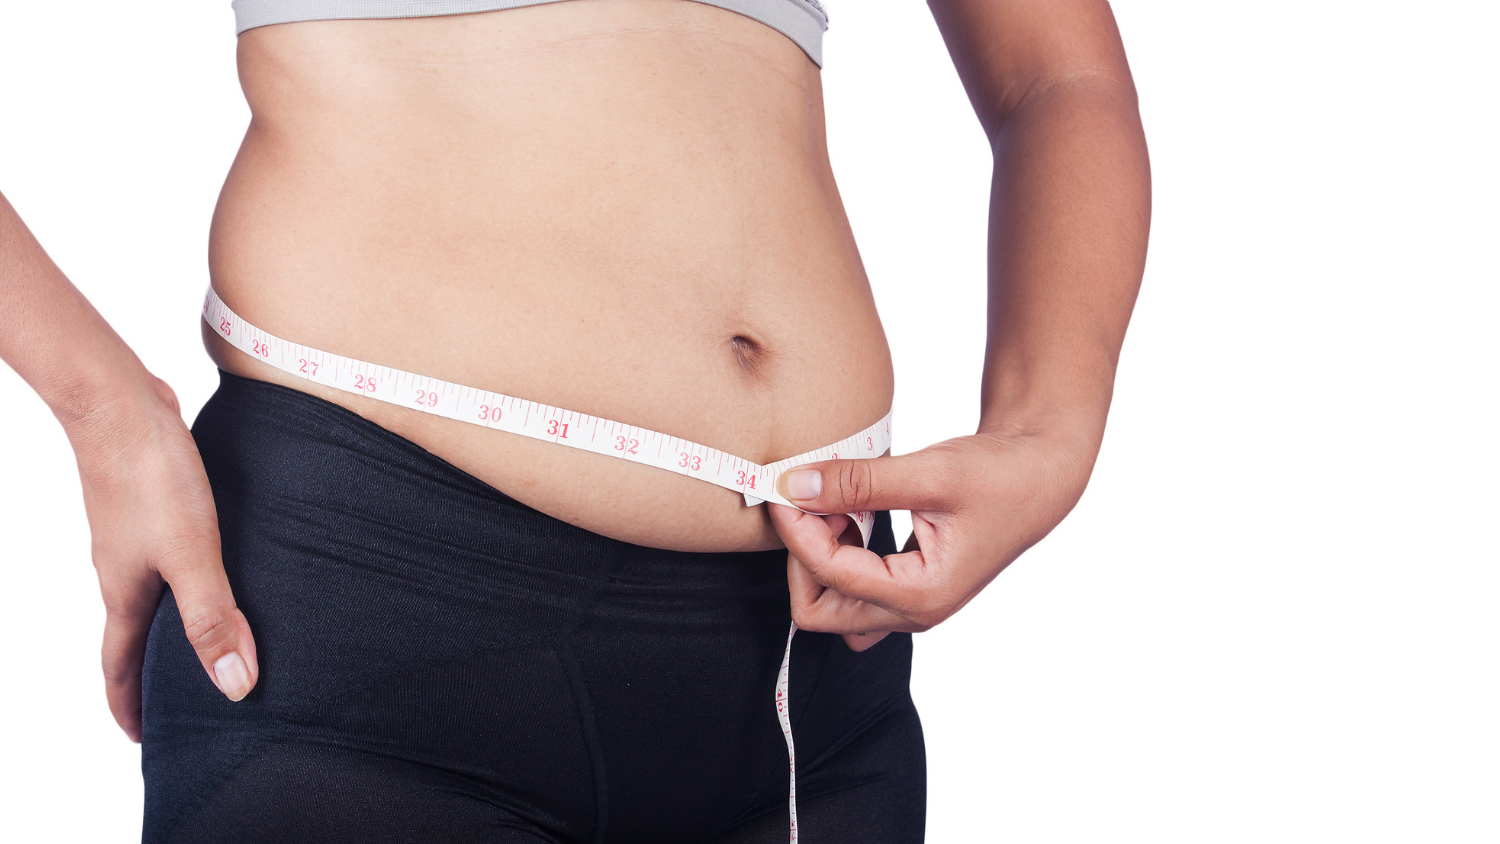 Incinerate Your Gut with these Belly Burner Tips